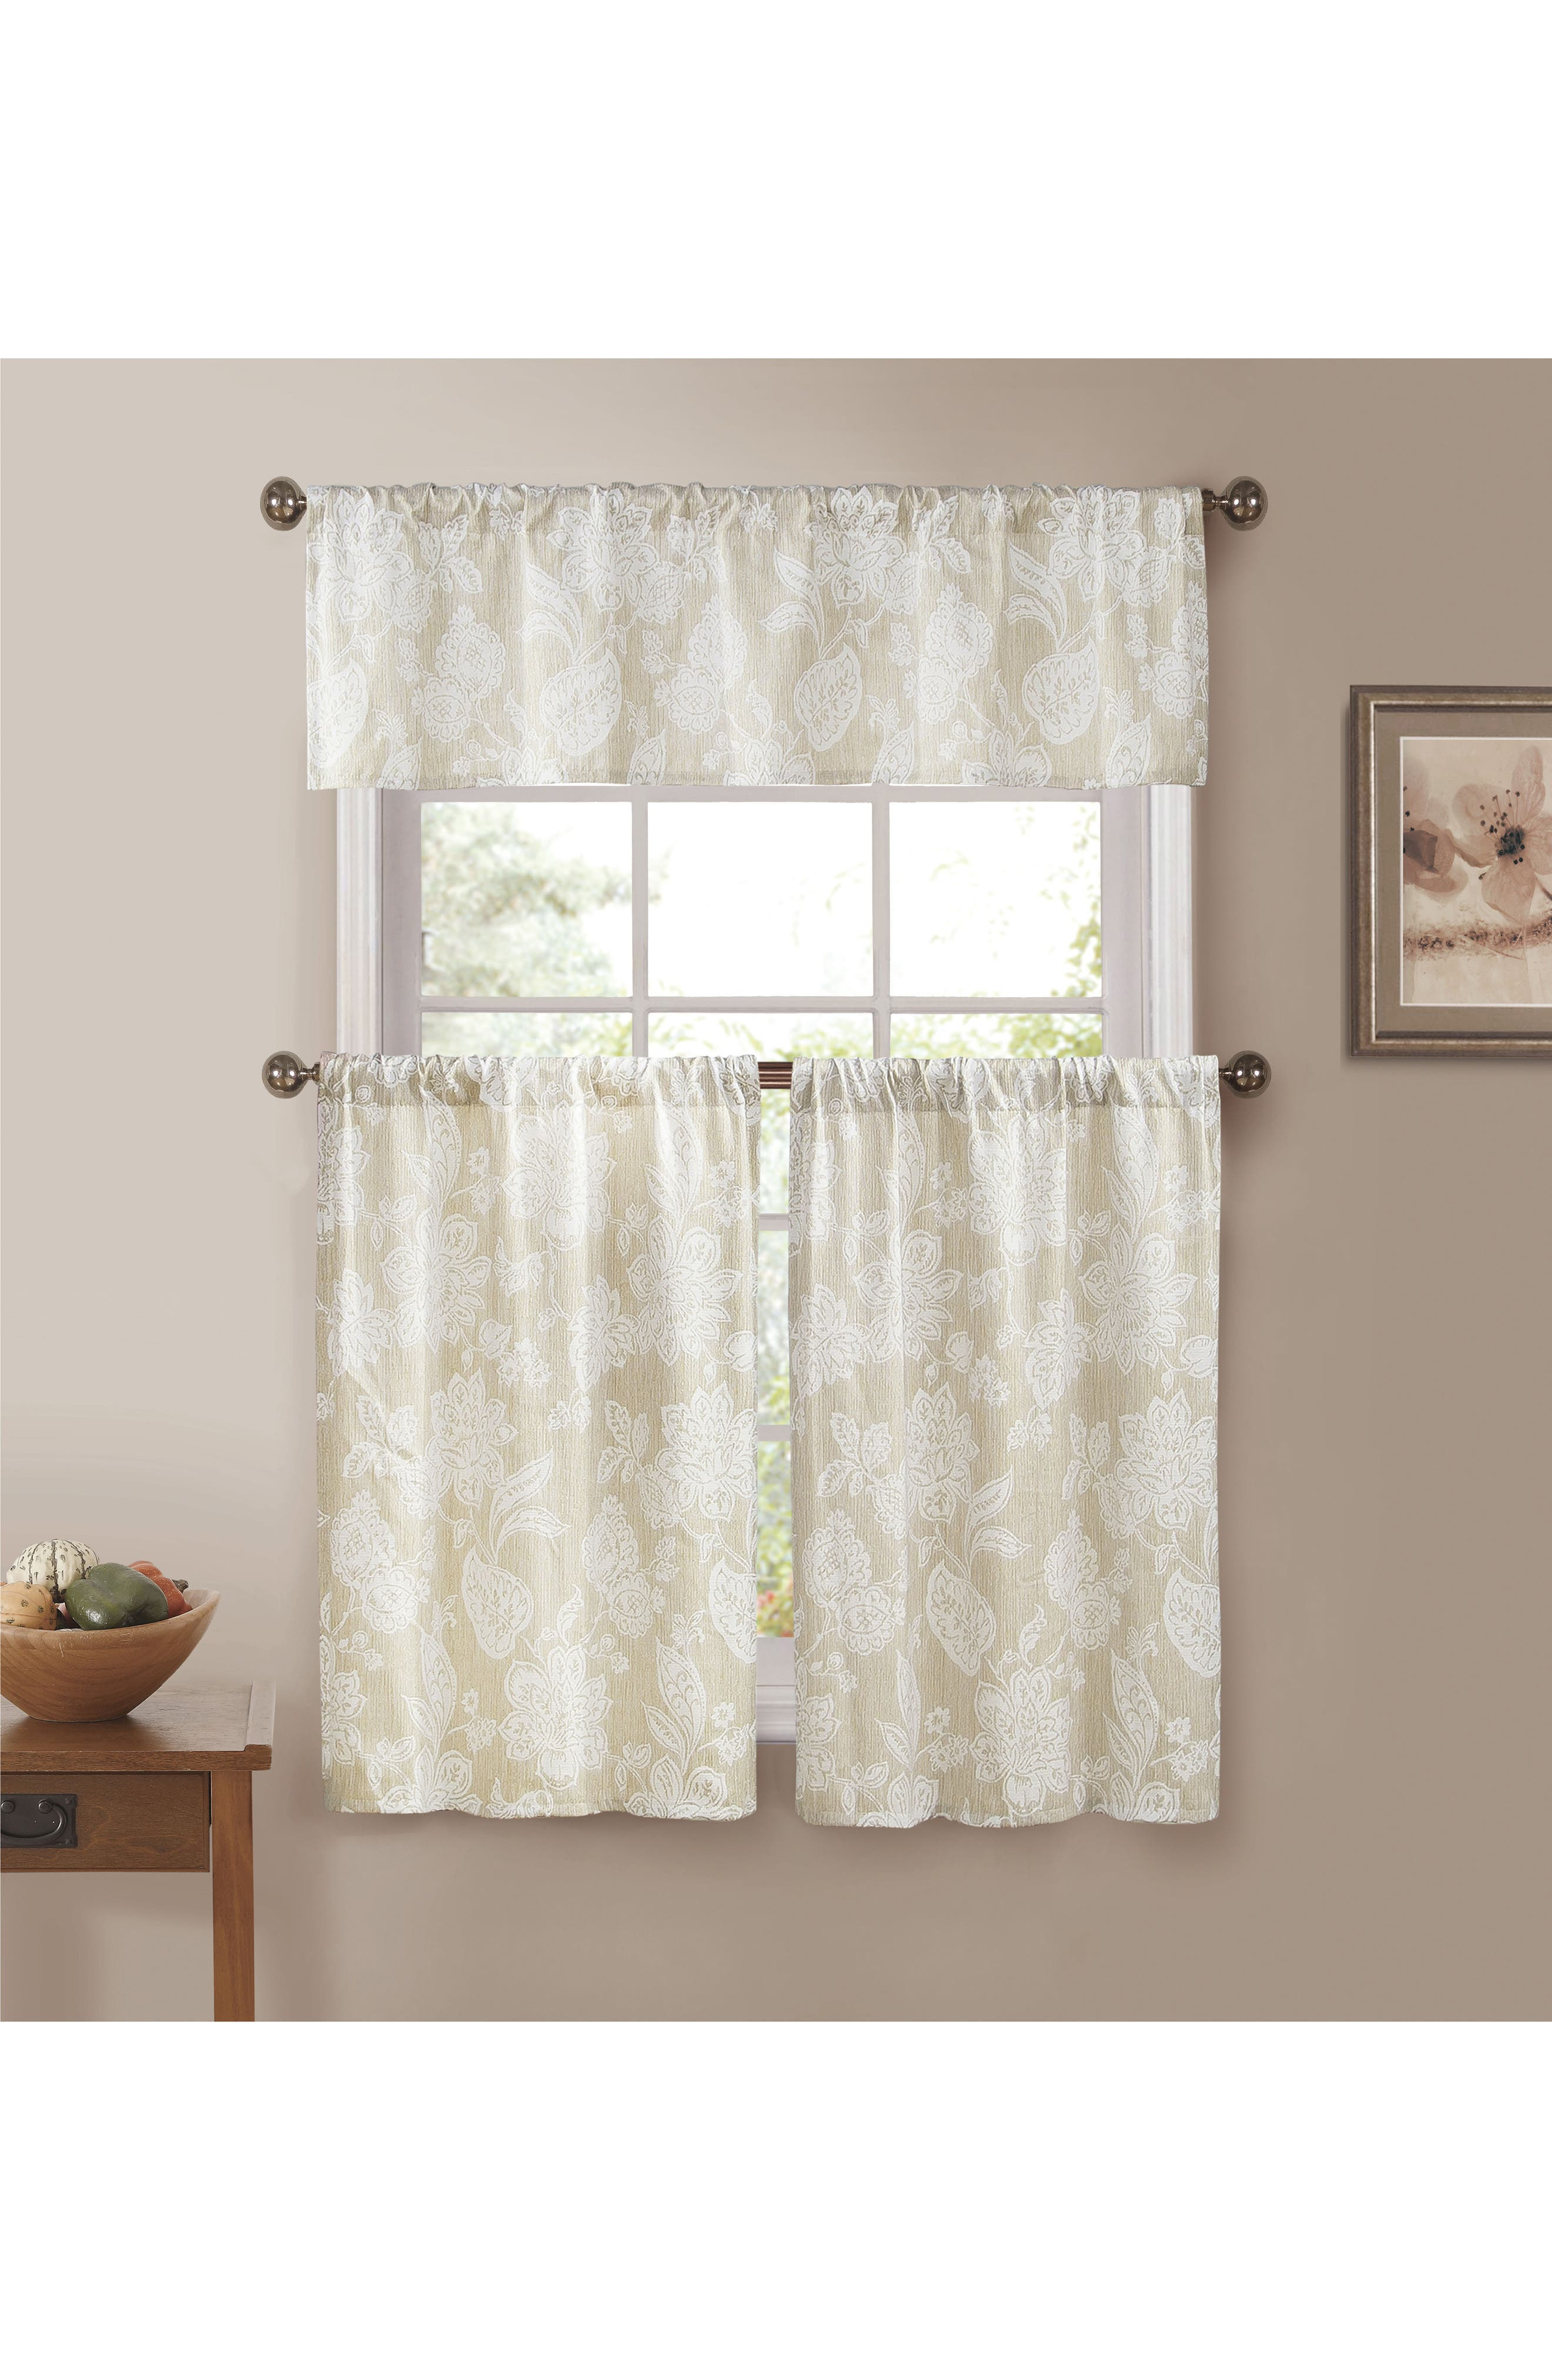 Duck River Textile Ewva Set of 3 Tiered Jacquard Small Pole Top Window Panels